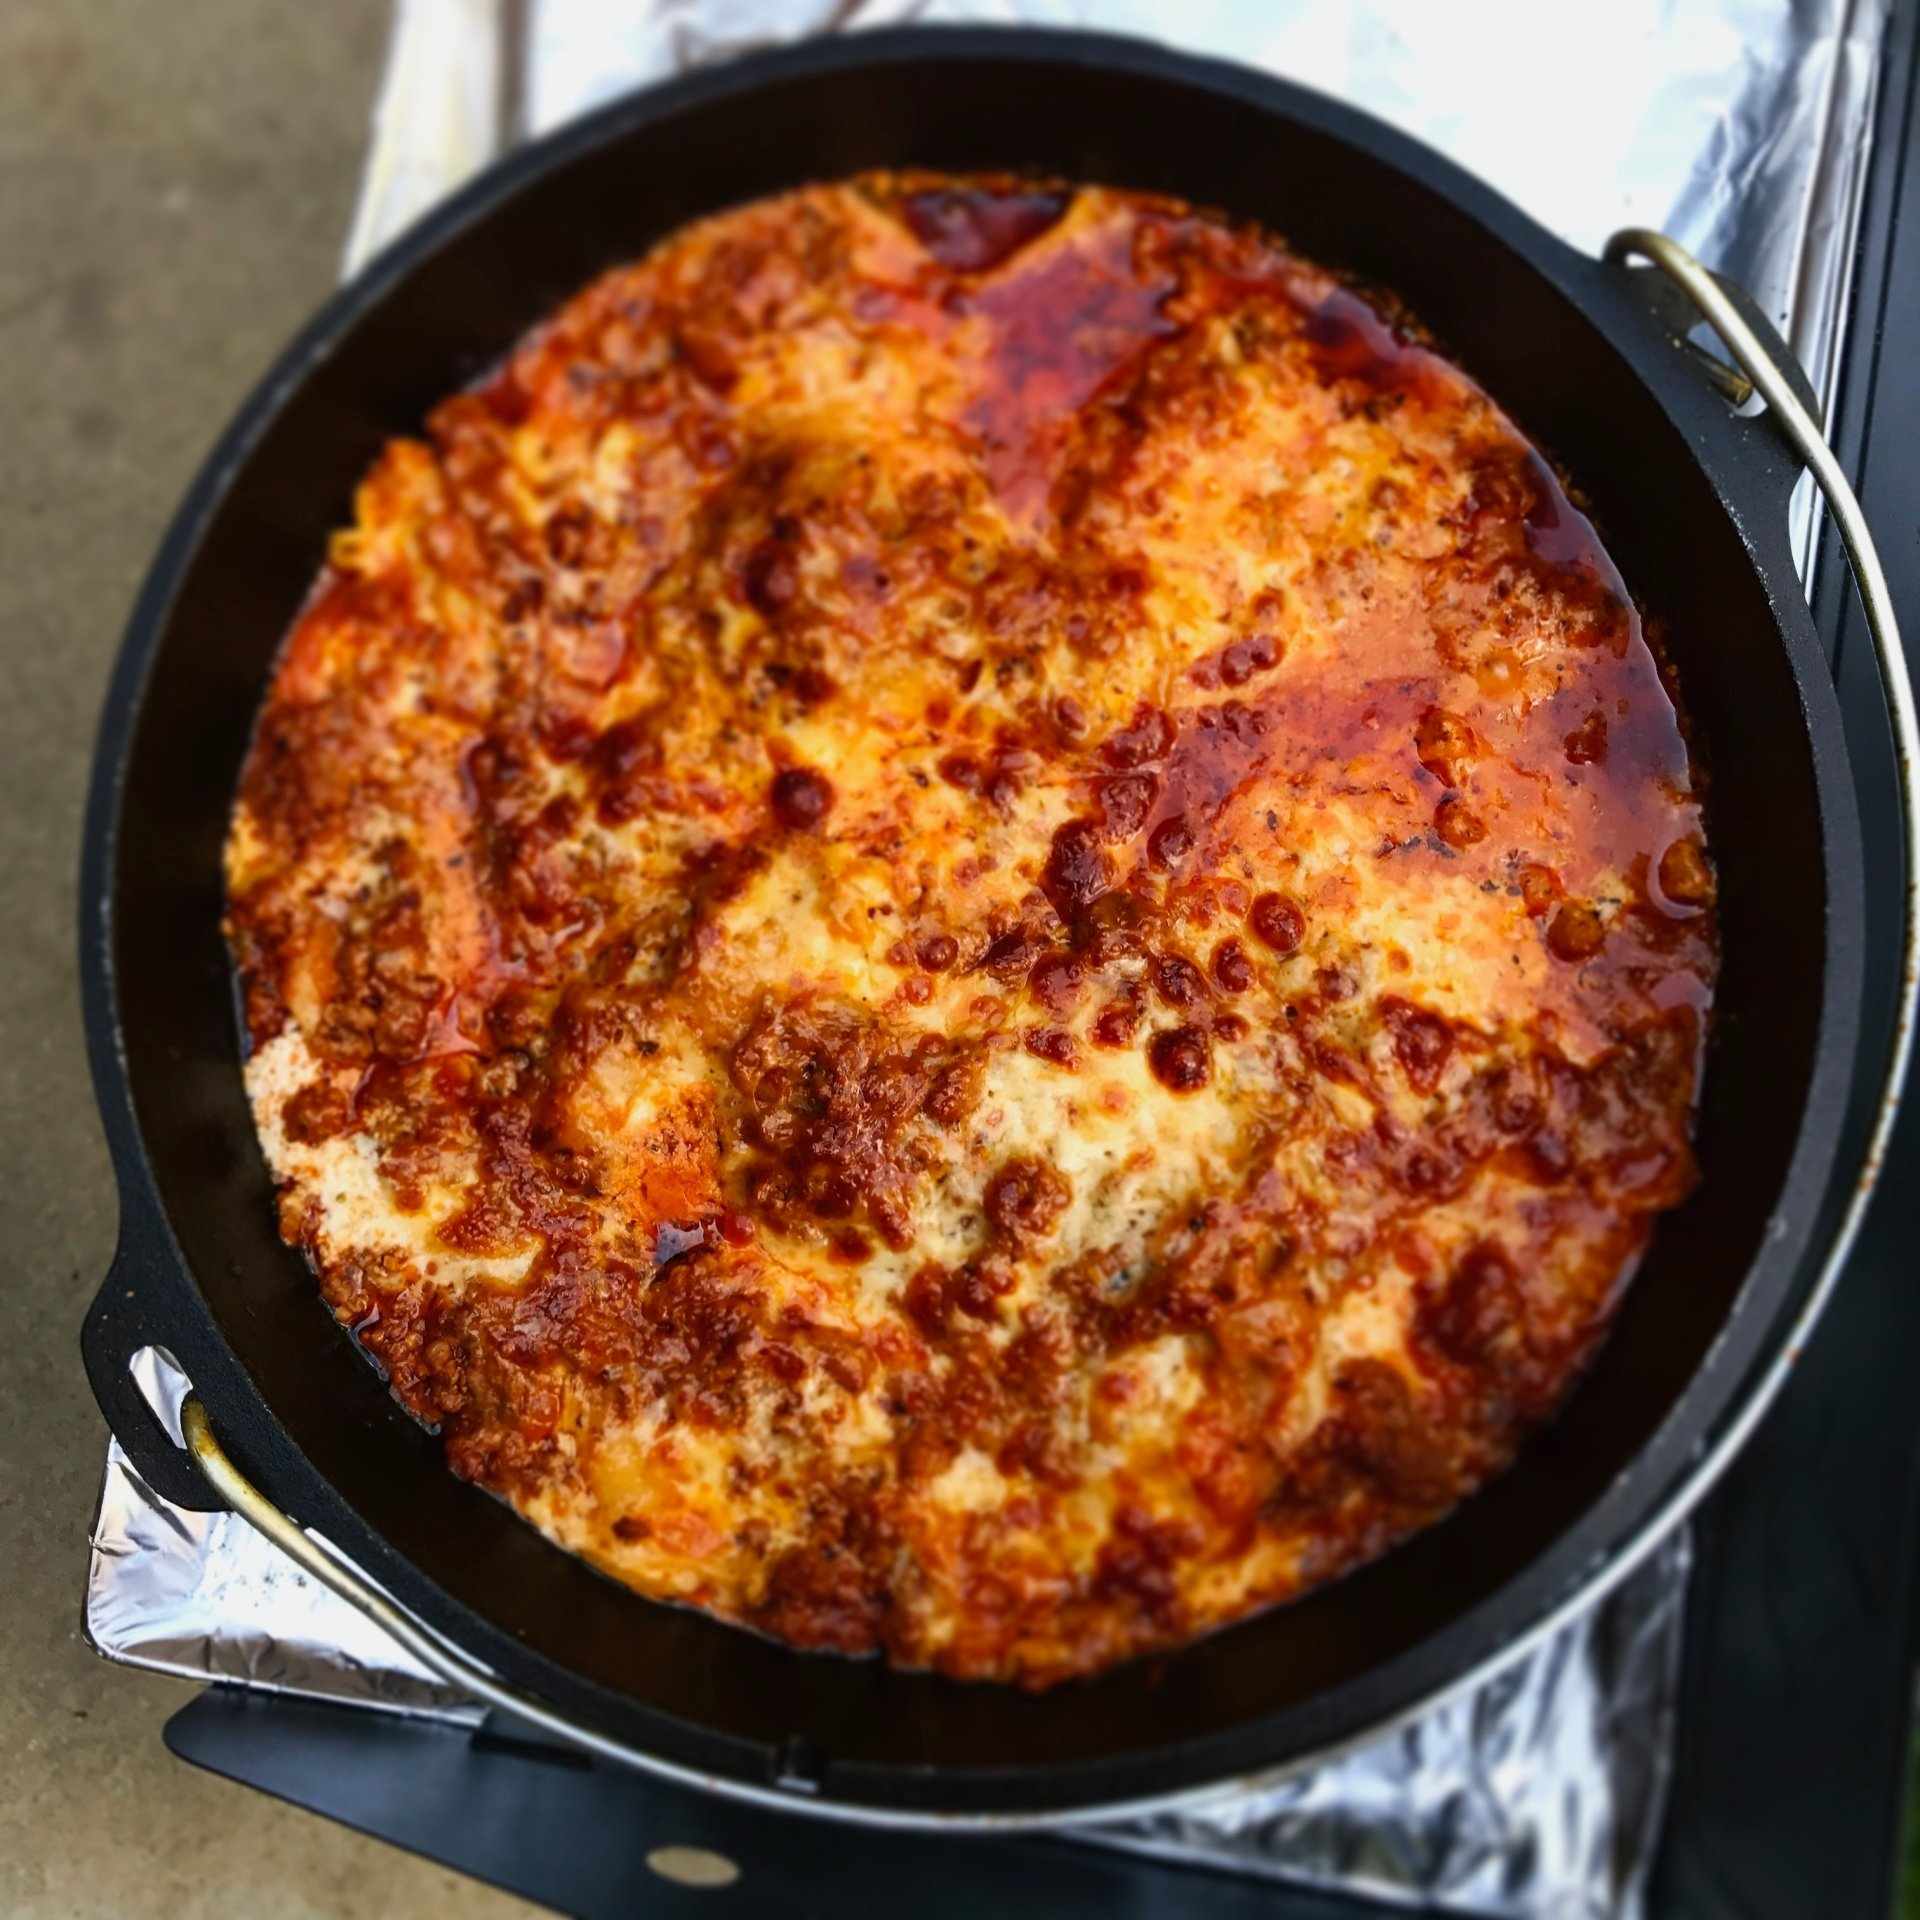 Dutch Oven Lasagna has all the flavor of your favorite lasagna but is made in your cast iron dutch oven